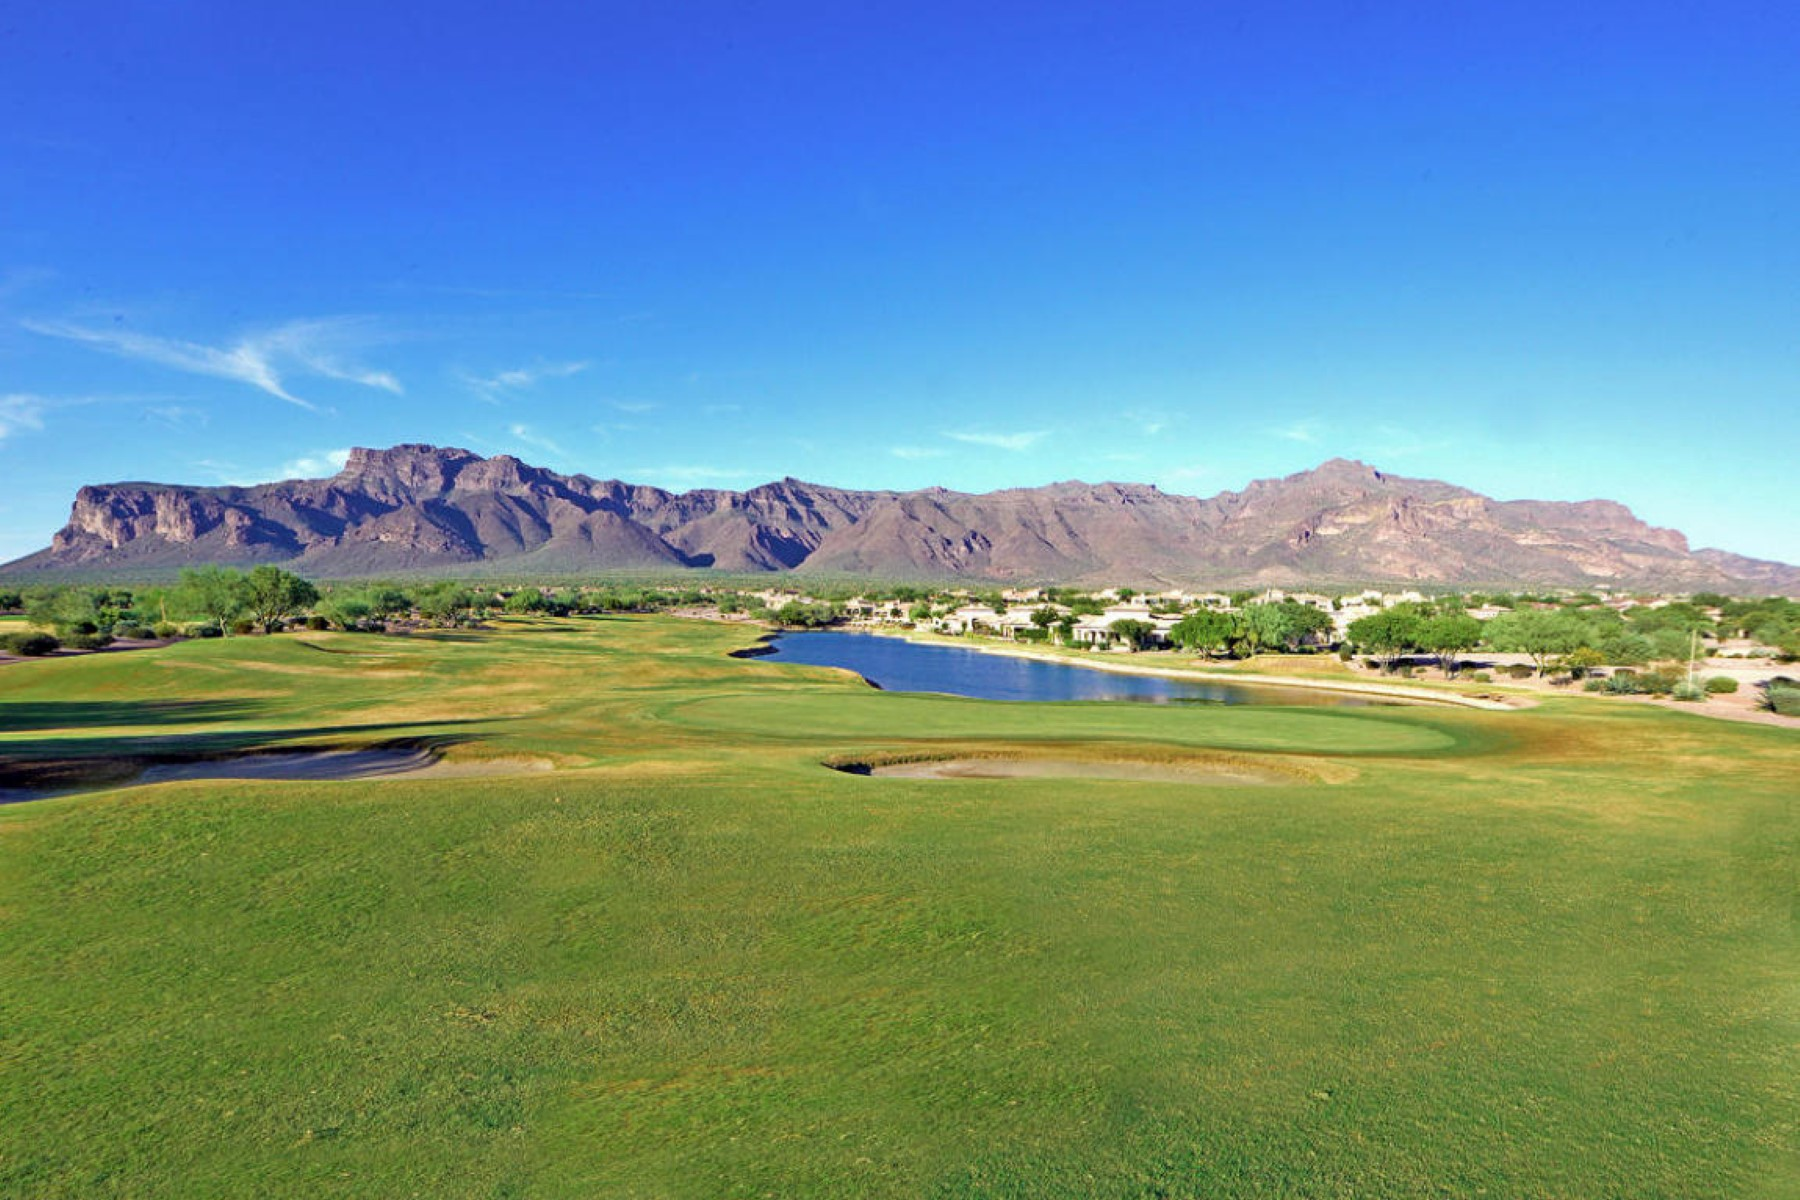 Land for Sale at Build-ready level lot with big views of the Superstitions 3605 S Ponderosa DR #18 Gold Canyon, Arizona 85118 United States